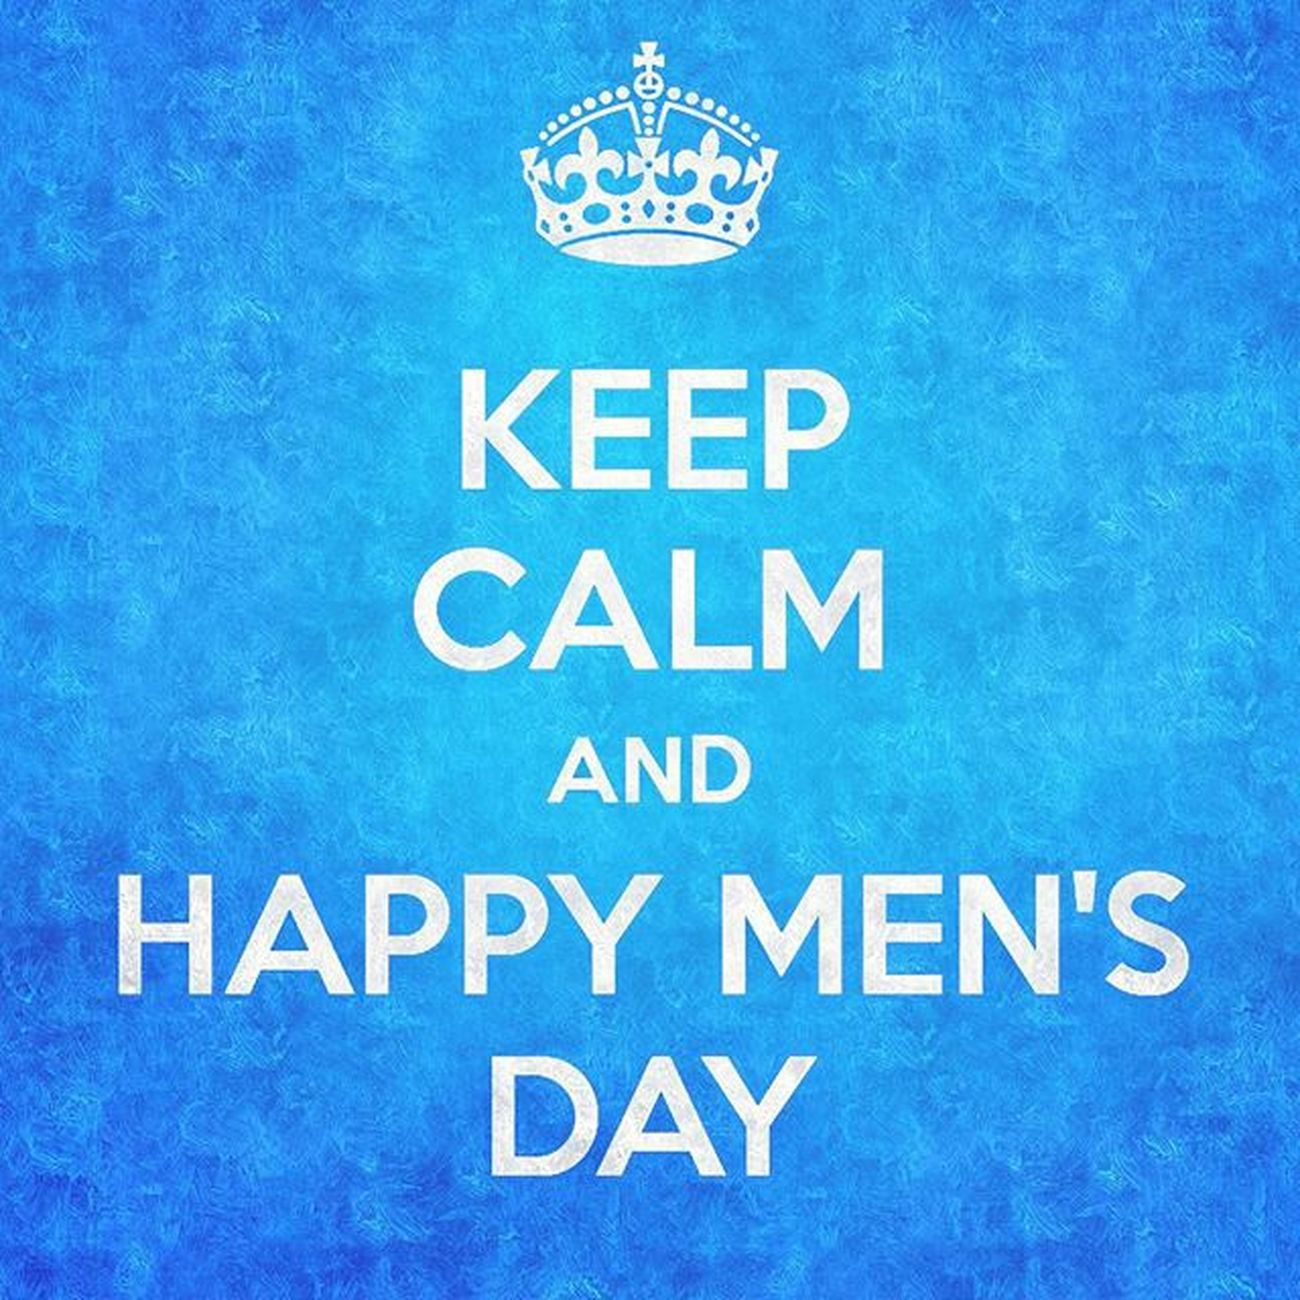 Happymensday Quoteoftheday International Mensday 19nov Chilloutmens Instagramers Instapost😎☺👌